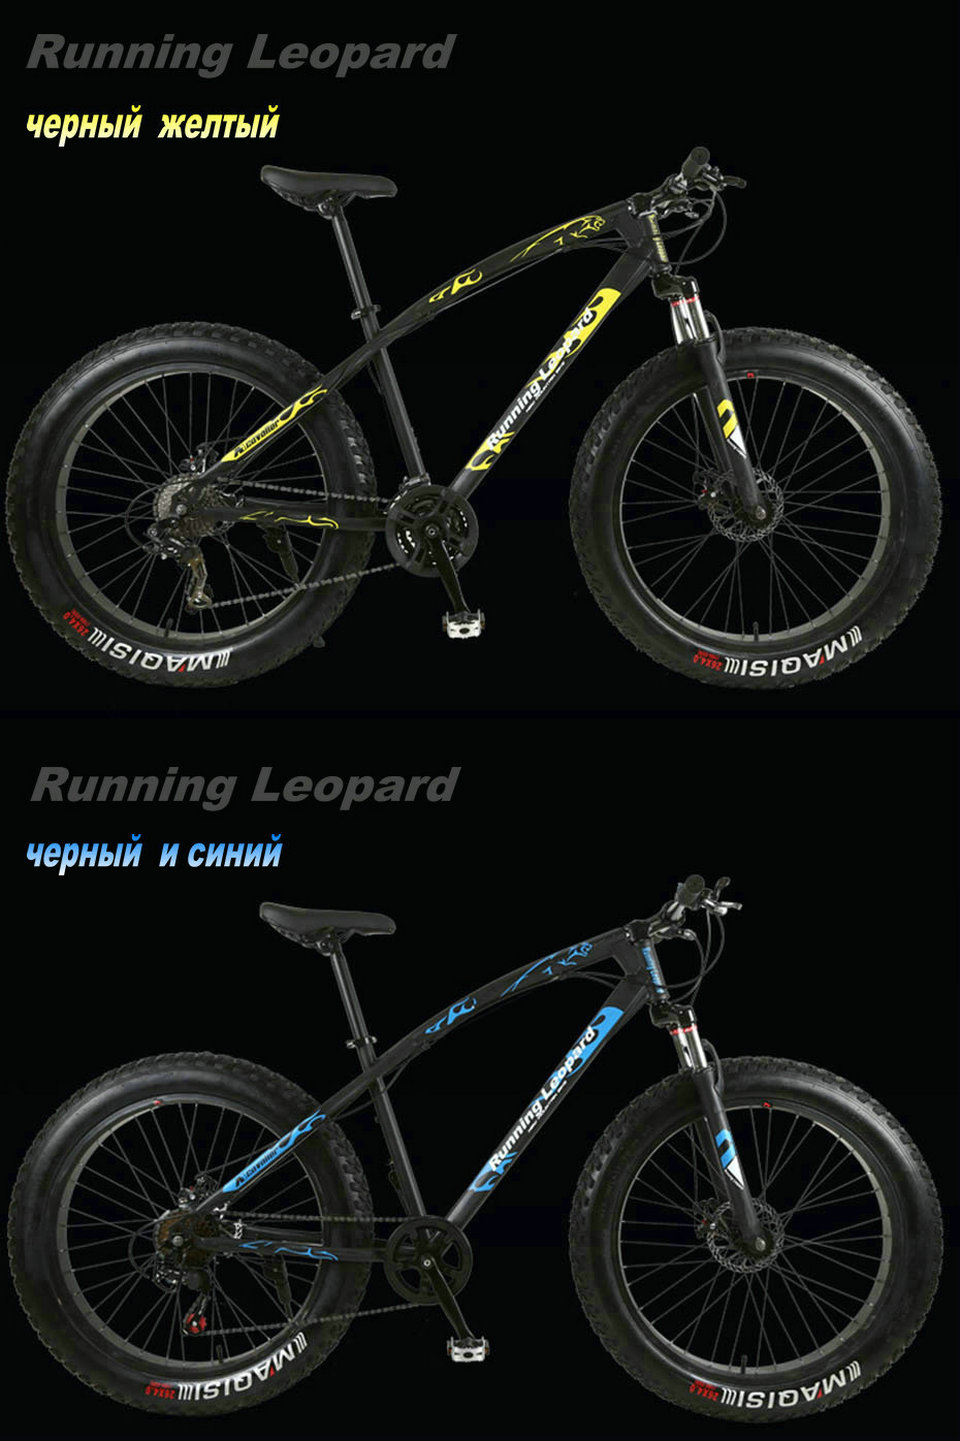 HTB1Ei1WbwmTBuNjy1Xbq6yMrVXaq Running Leopard 7/21/24 Speed 26x4.0 Fat bike Mountain Bike Snow Bicycle Shock Suspension Fork Free delivery Russia bicycle